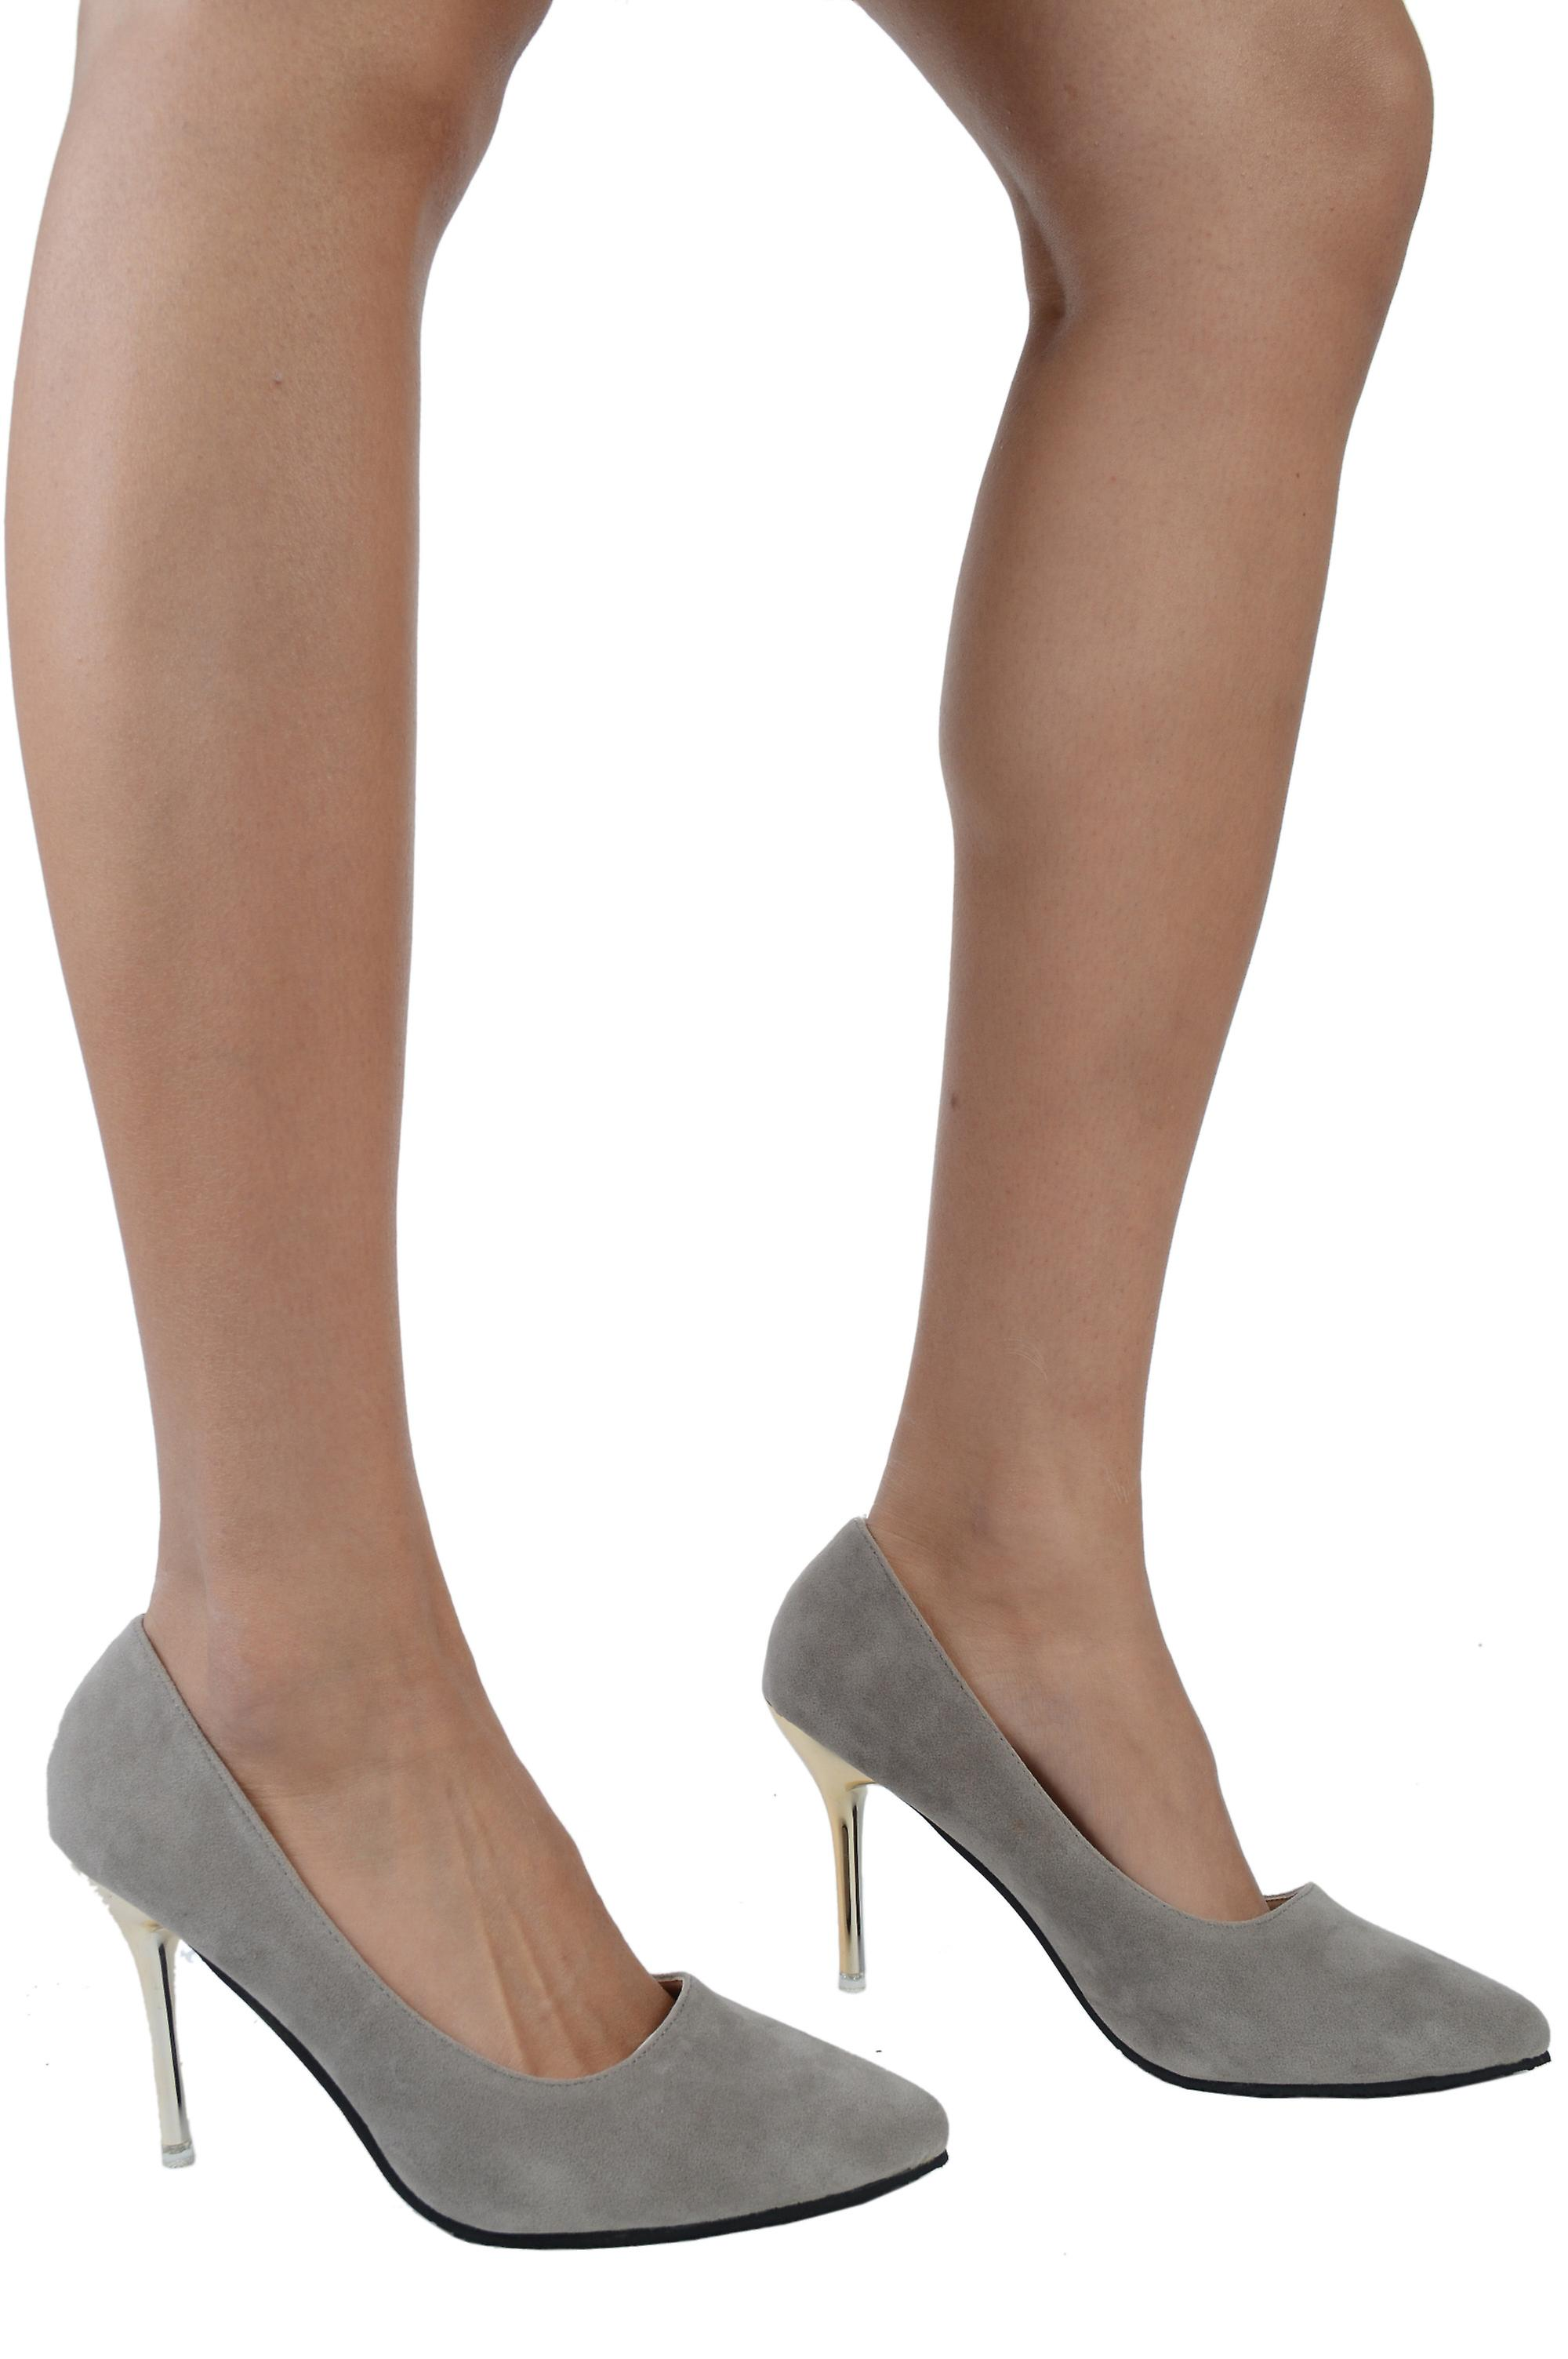 LMS Grey Suede Heels With Pointed Toe And Gold Metallic Heel